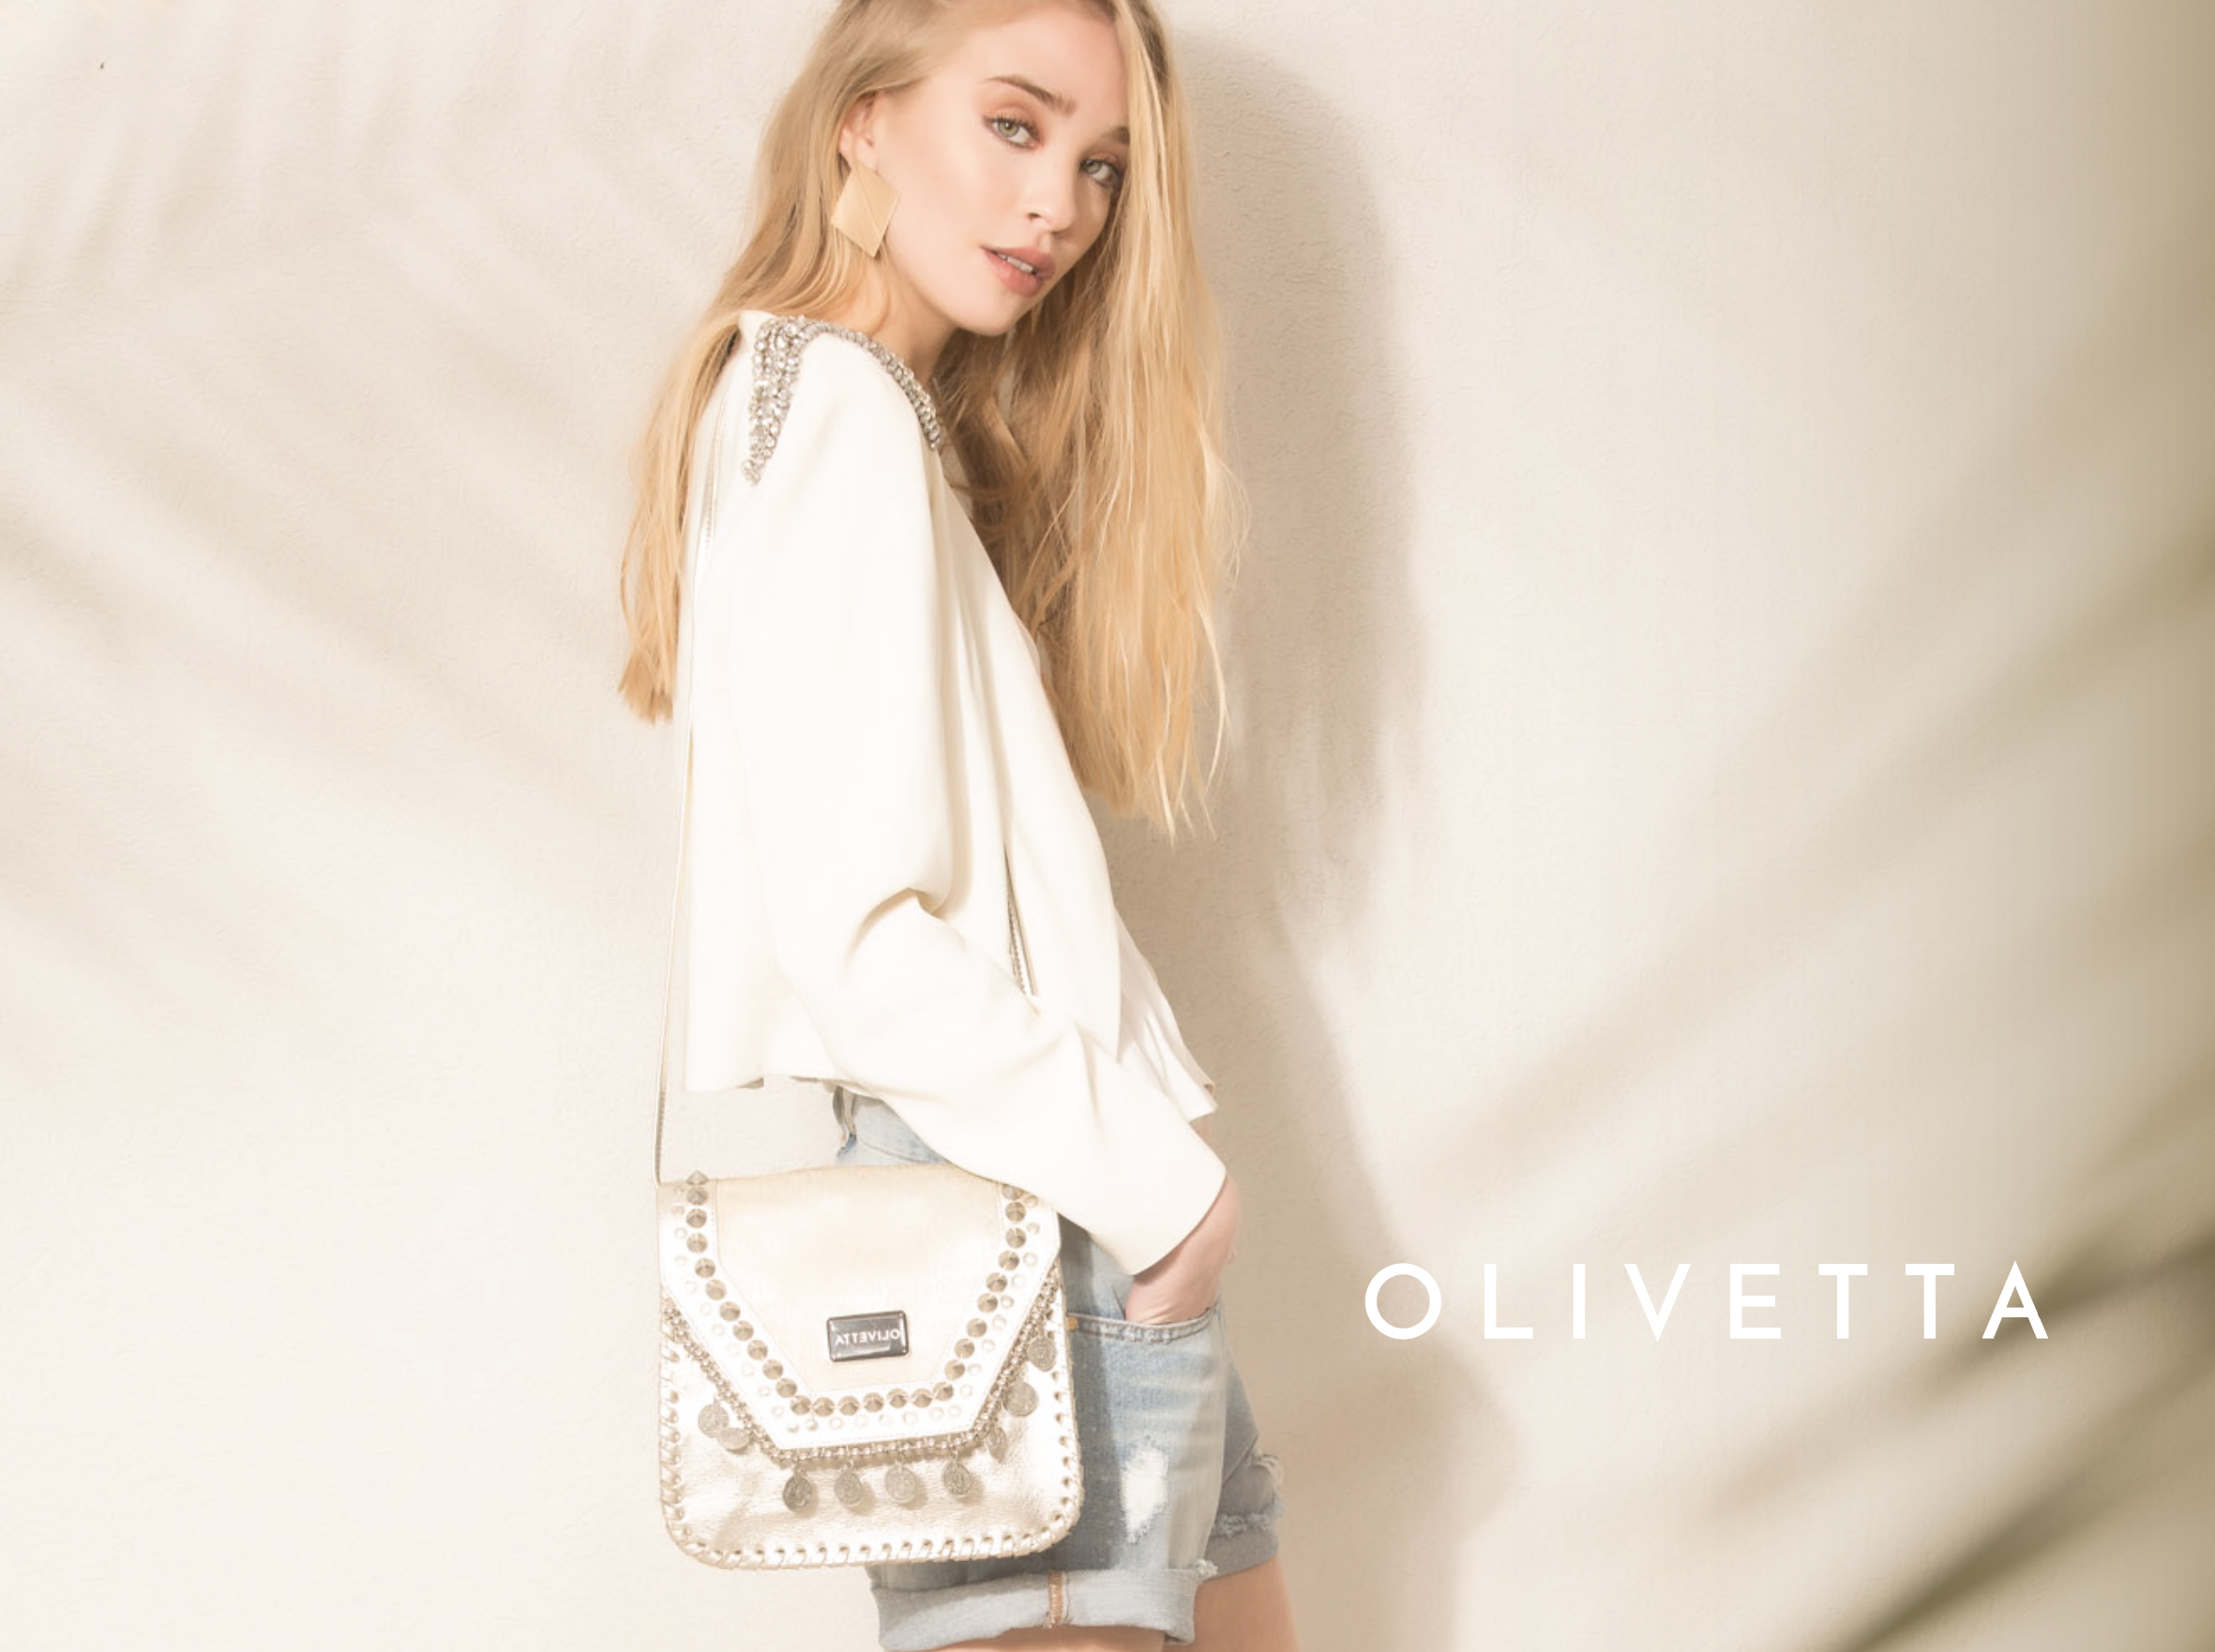 Working for Olivetta